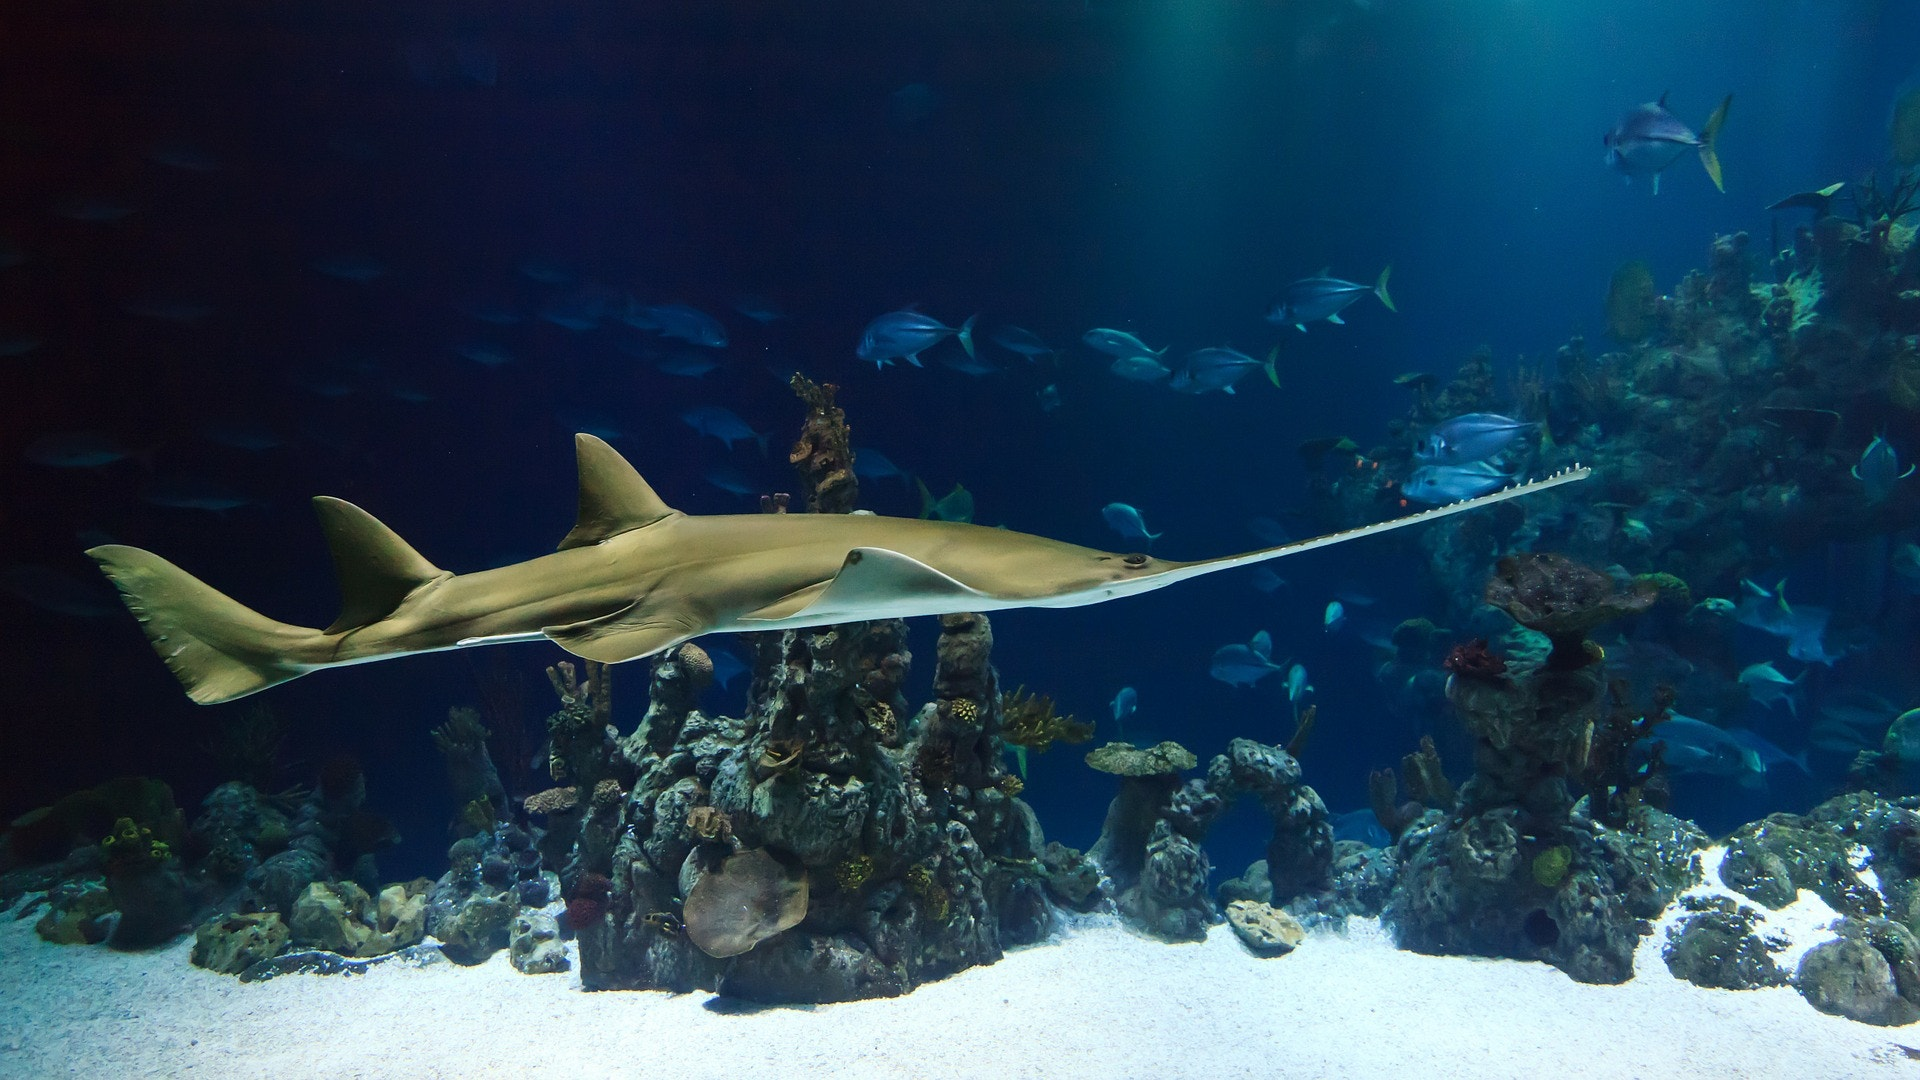 underwater photography examples